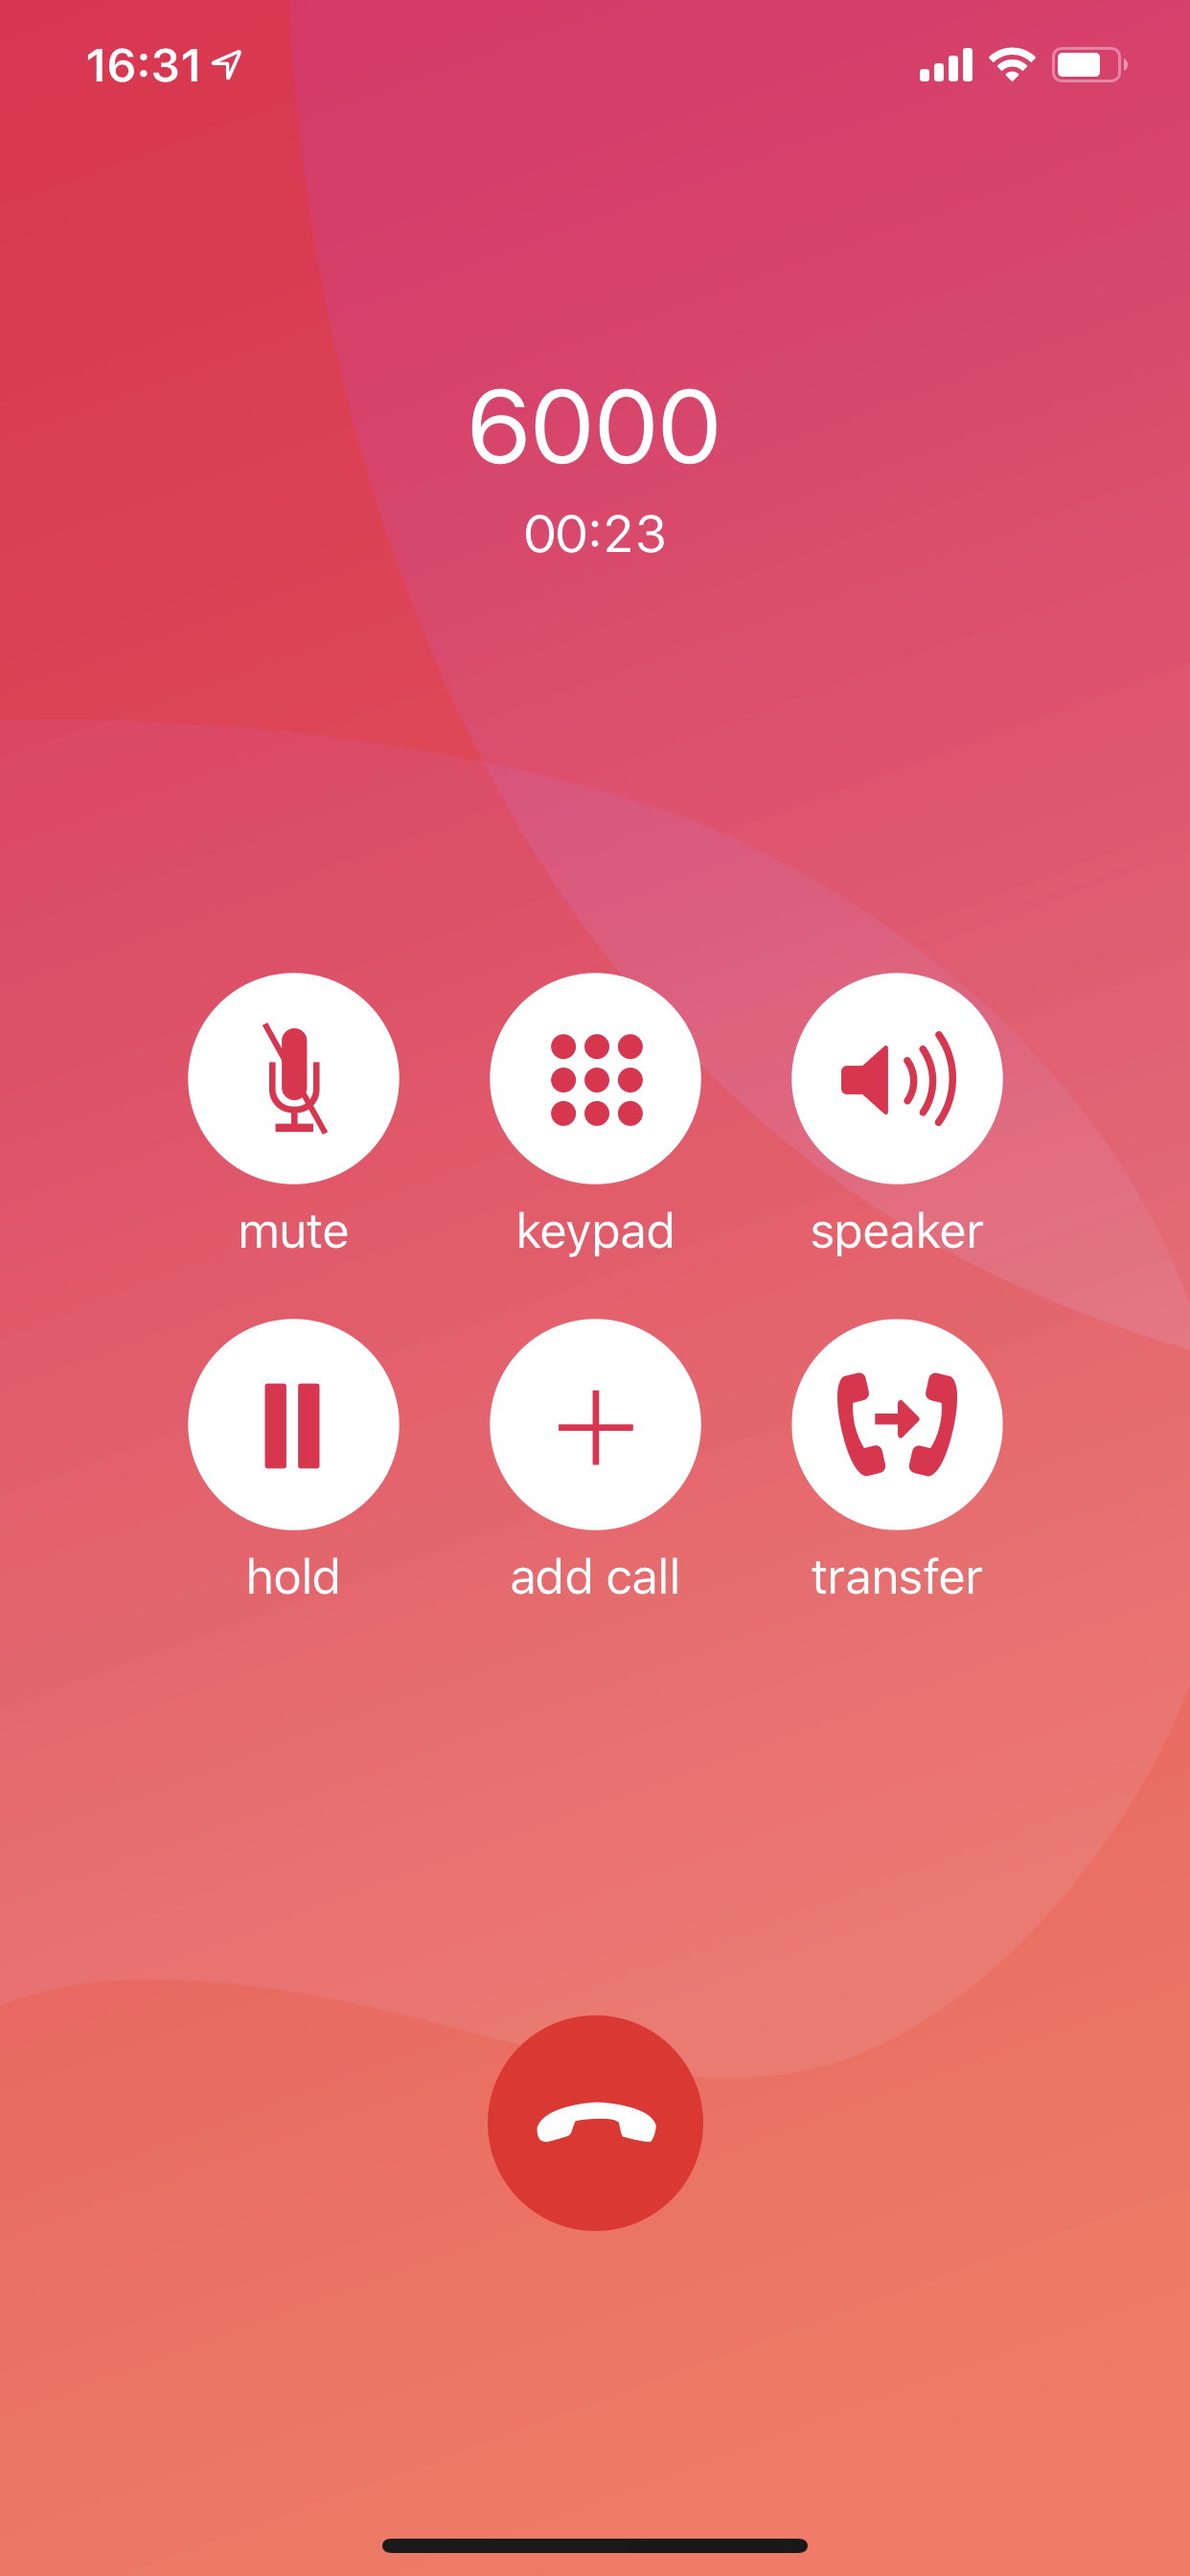 Voice calling app and phone system